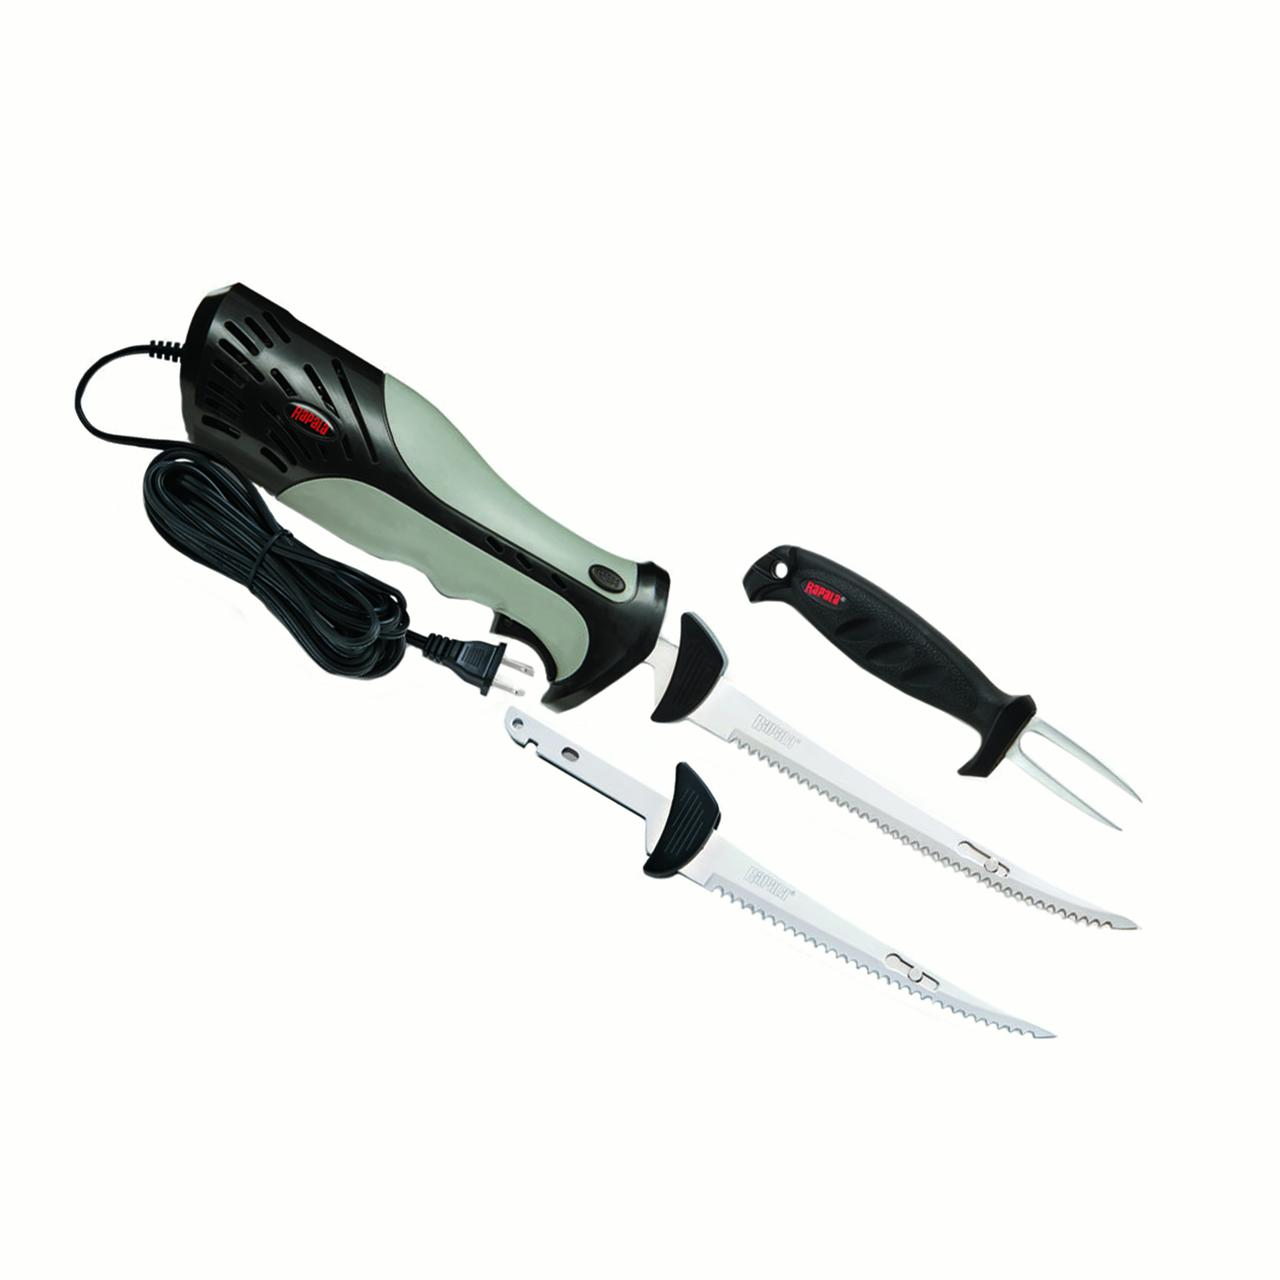 Rapala Heavy Duty Electric Knife Fillet, Combo